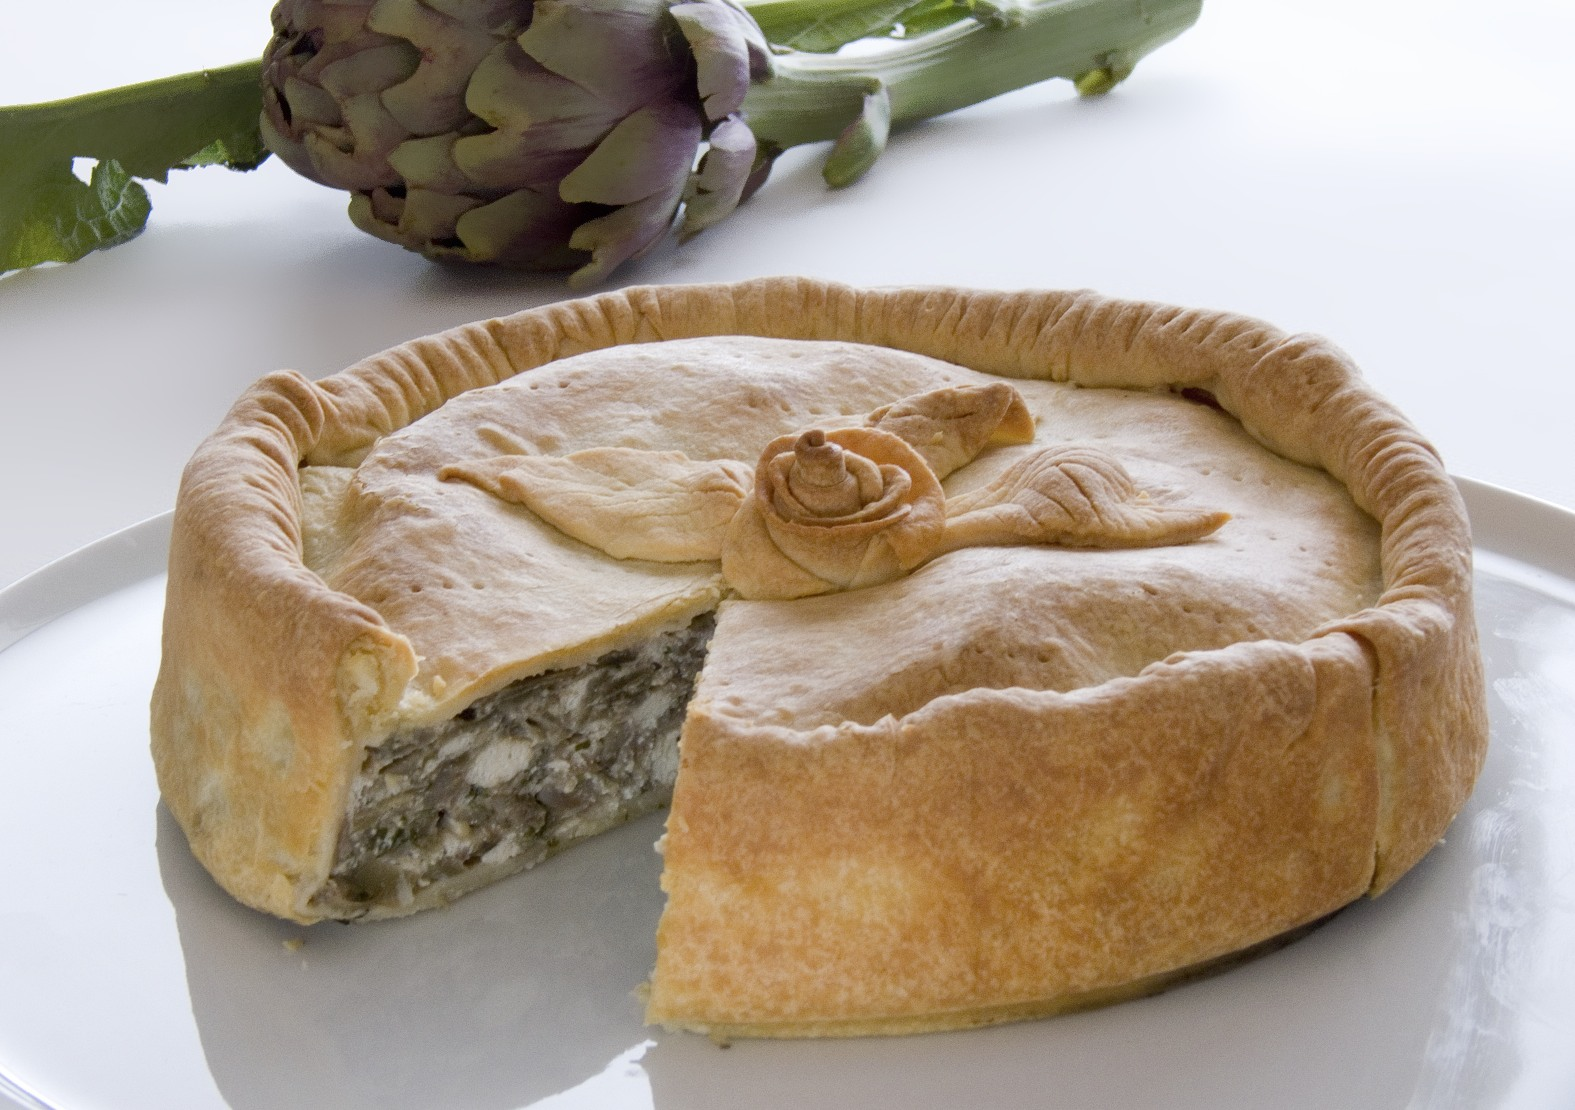 Artichoke Pie Sliced